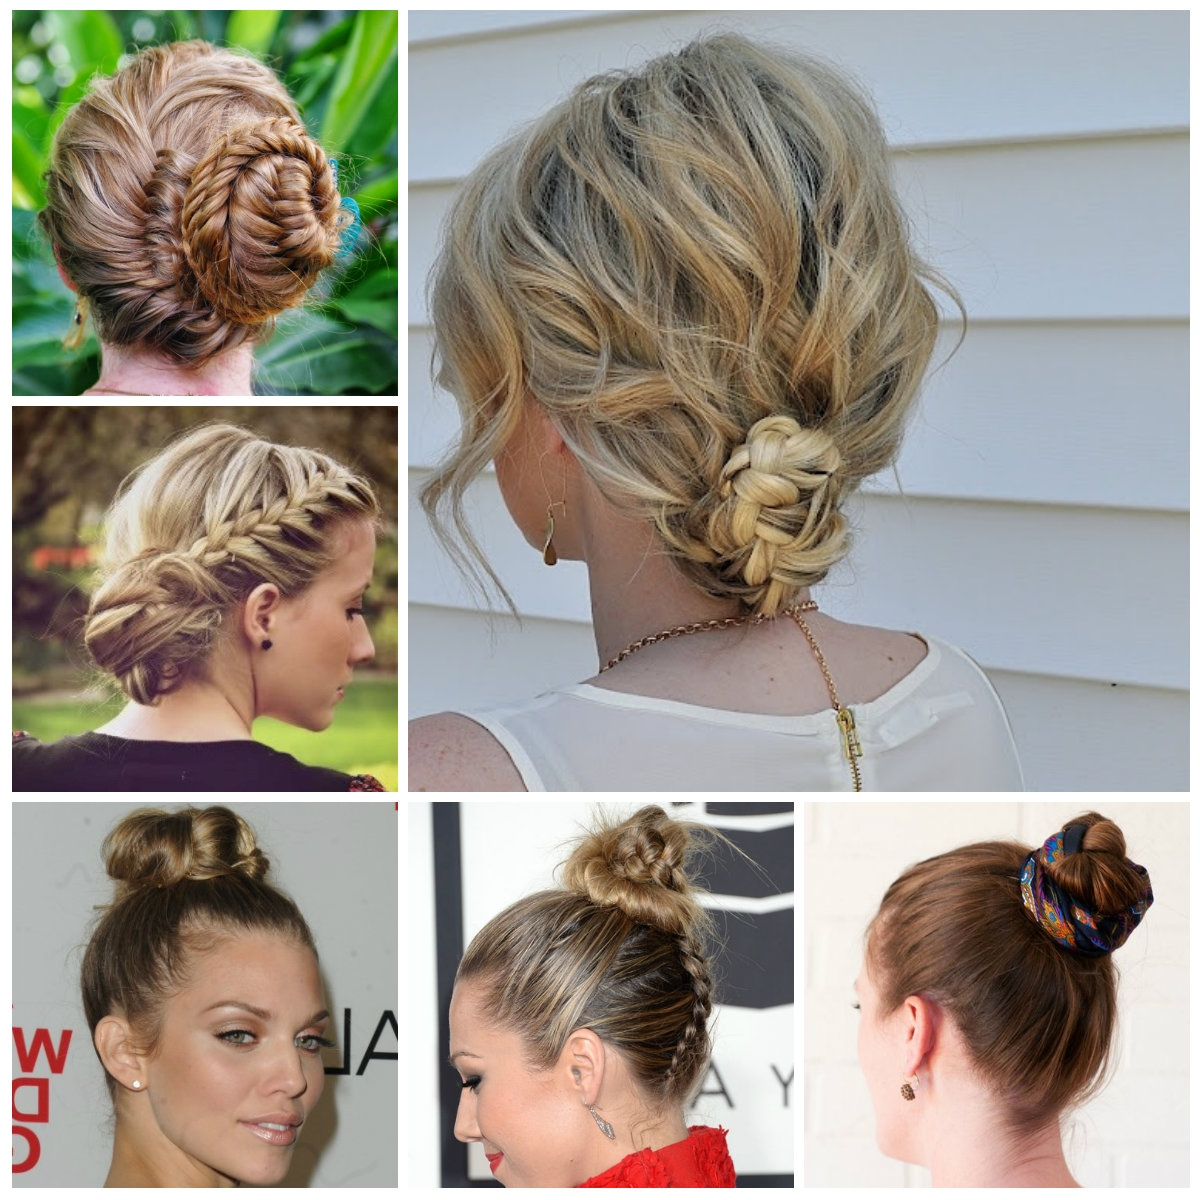 Cute Braided Bun Hairstyles 2016 Best Of Hairstyles With Braids And Throughout Newest Bun Braided Hairstyles (View 7 of 15)